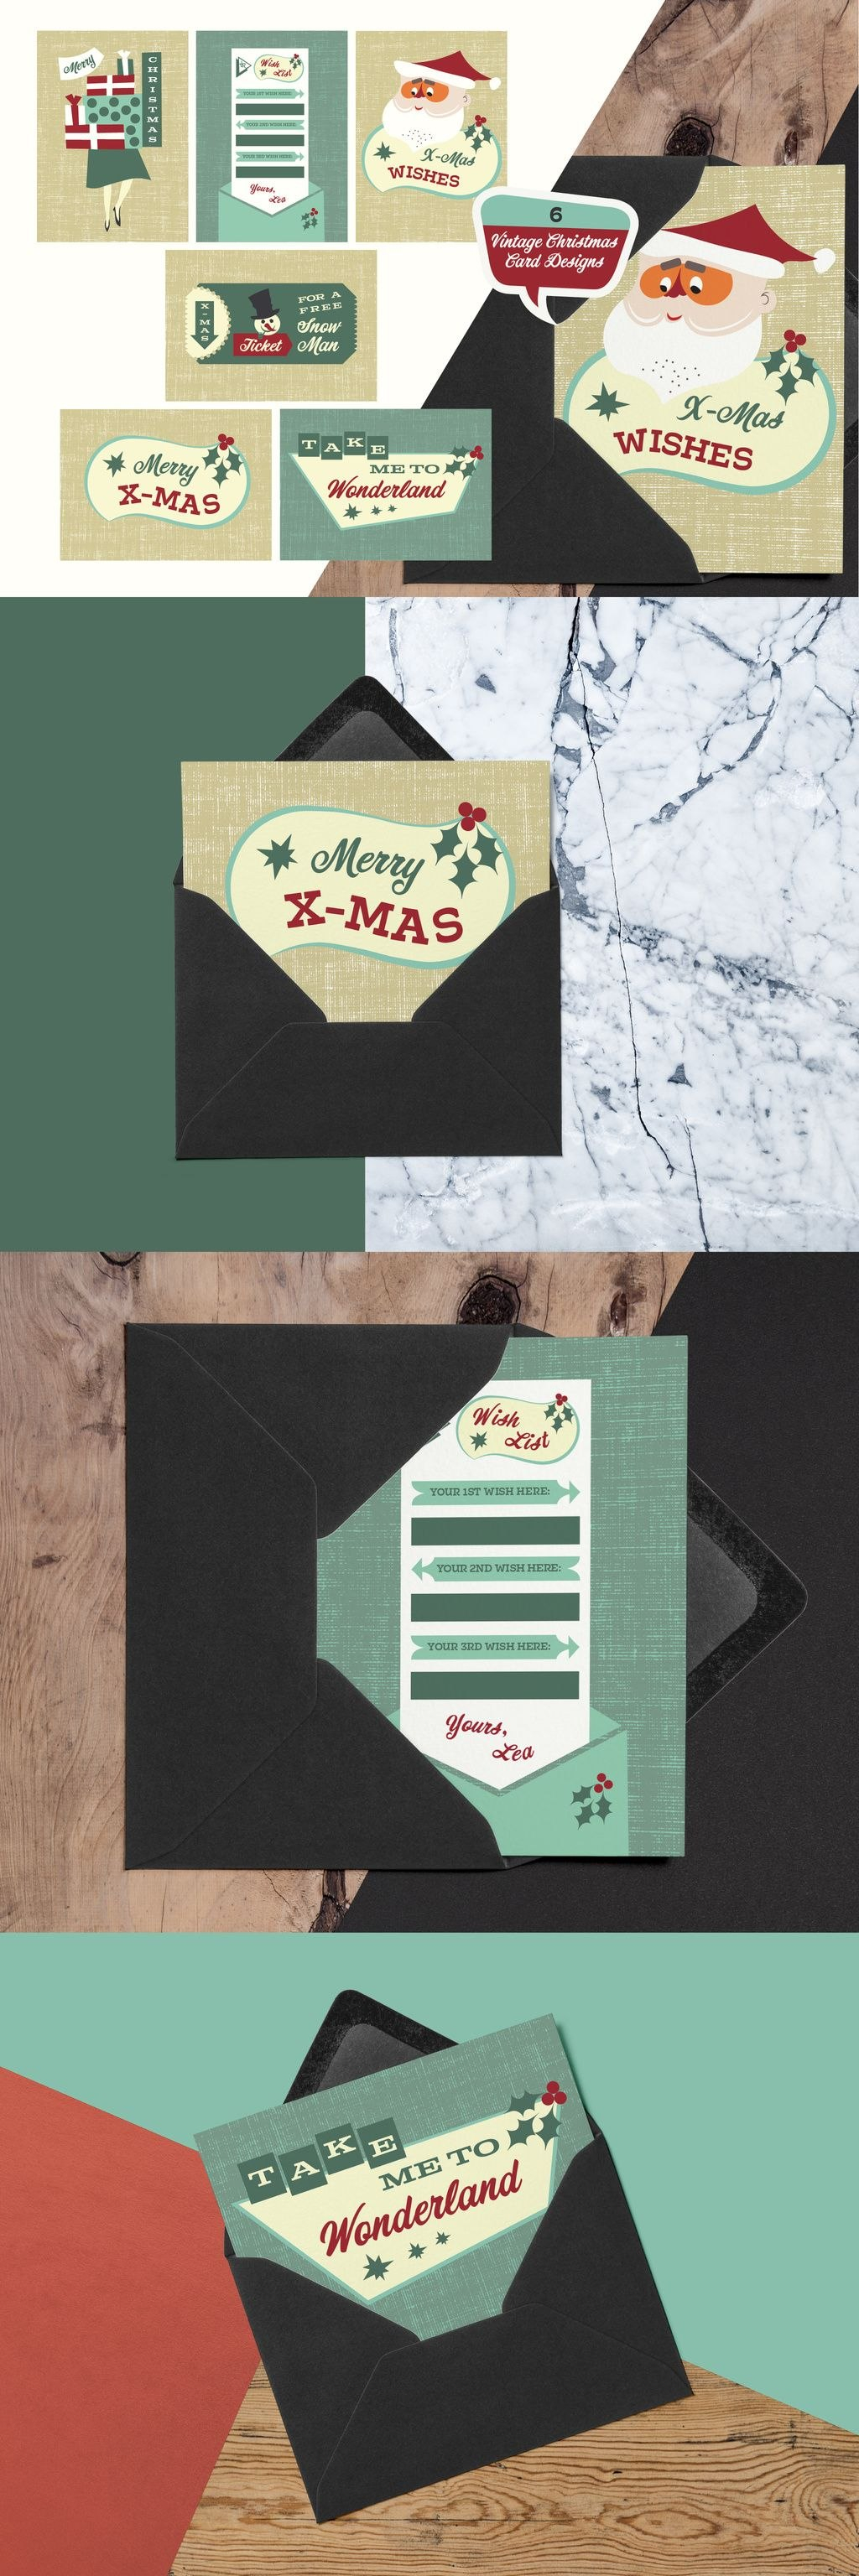 Retro Christmas Cards Template For Adobe Illustrator Template Inside Adobe Illustrator Christmas Card Template